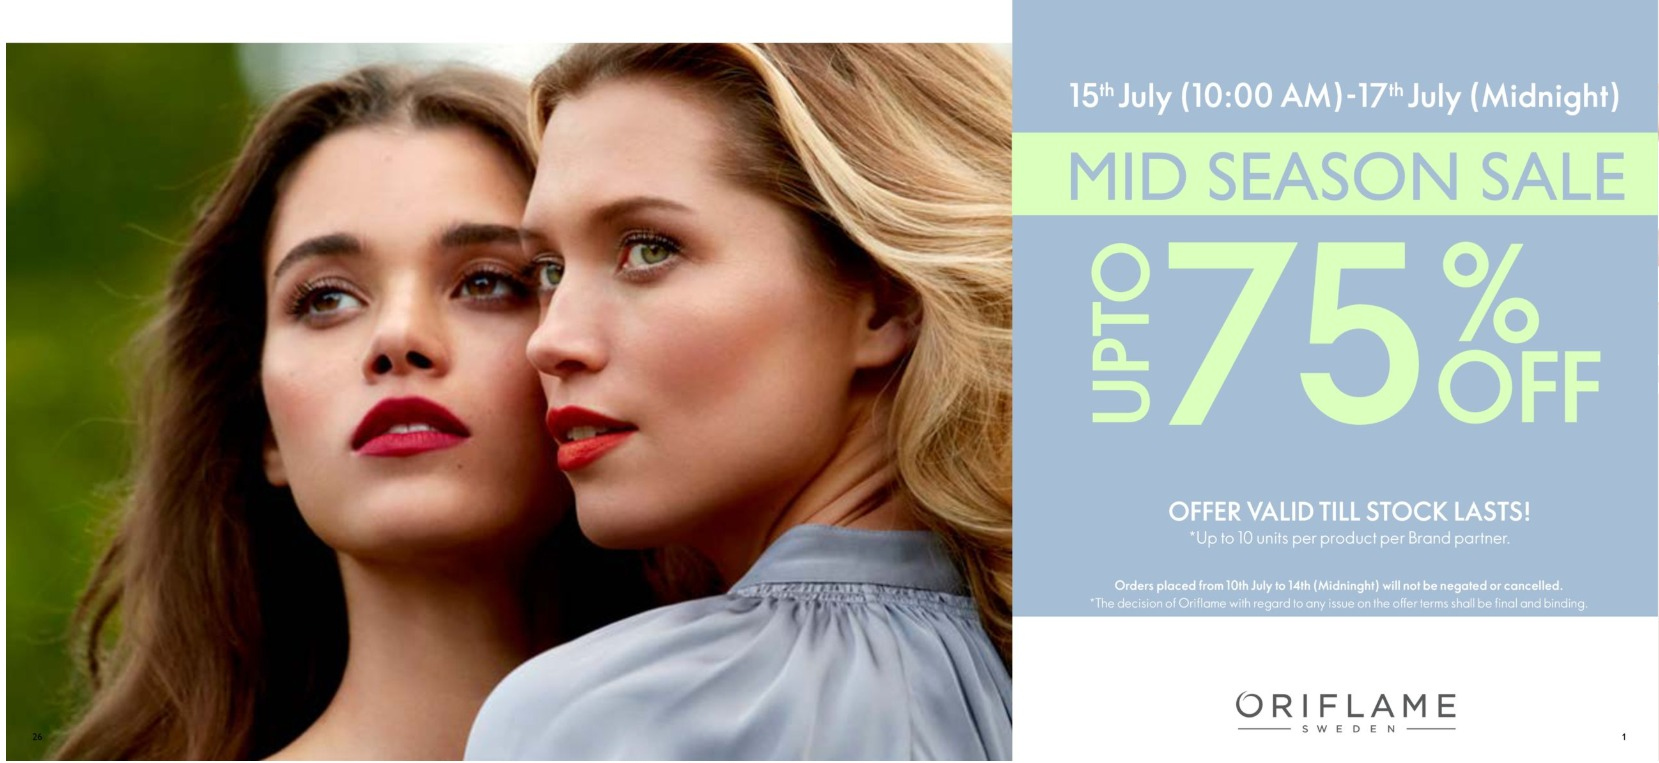 Oriflame offer  - 15.07.2020 - 17.07.2020. Page 1.